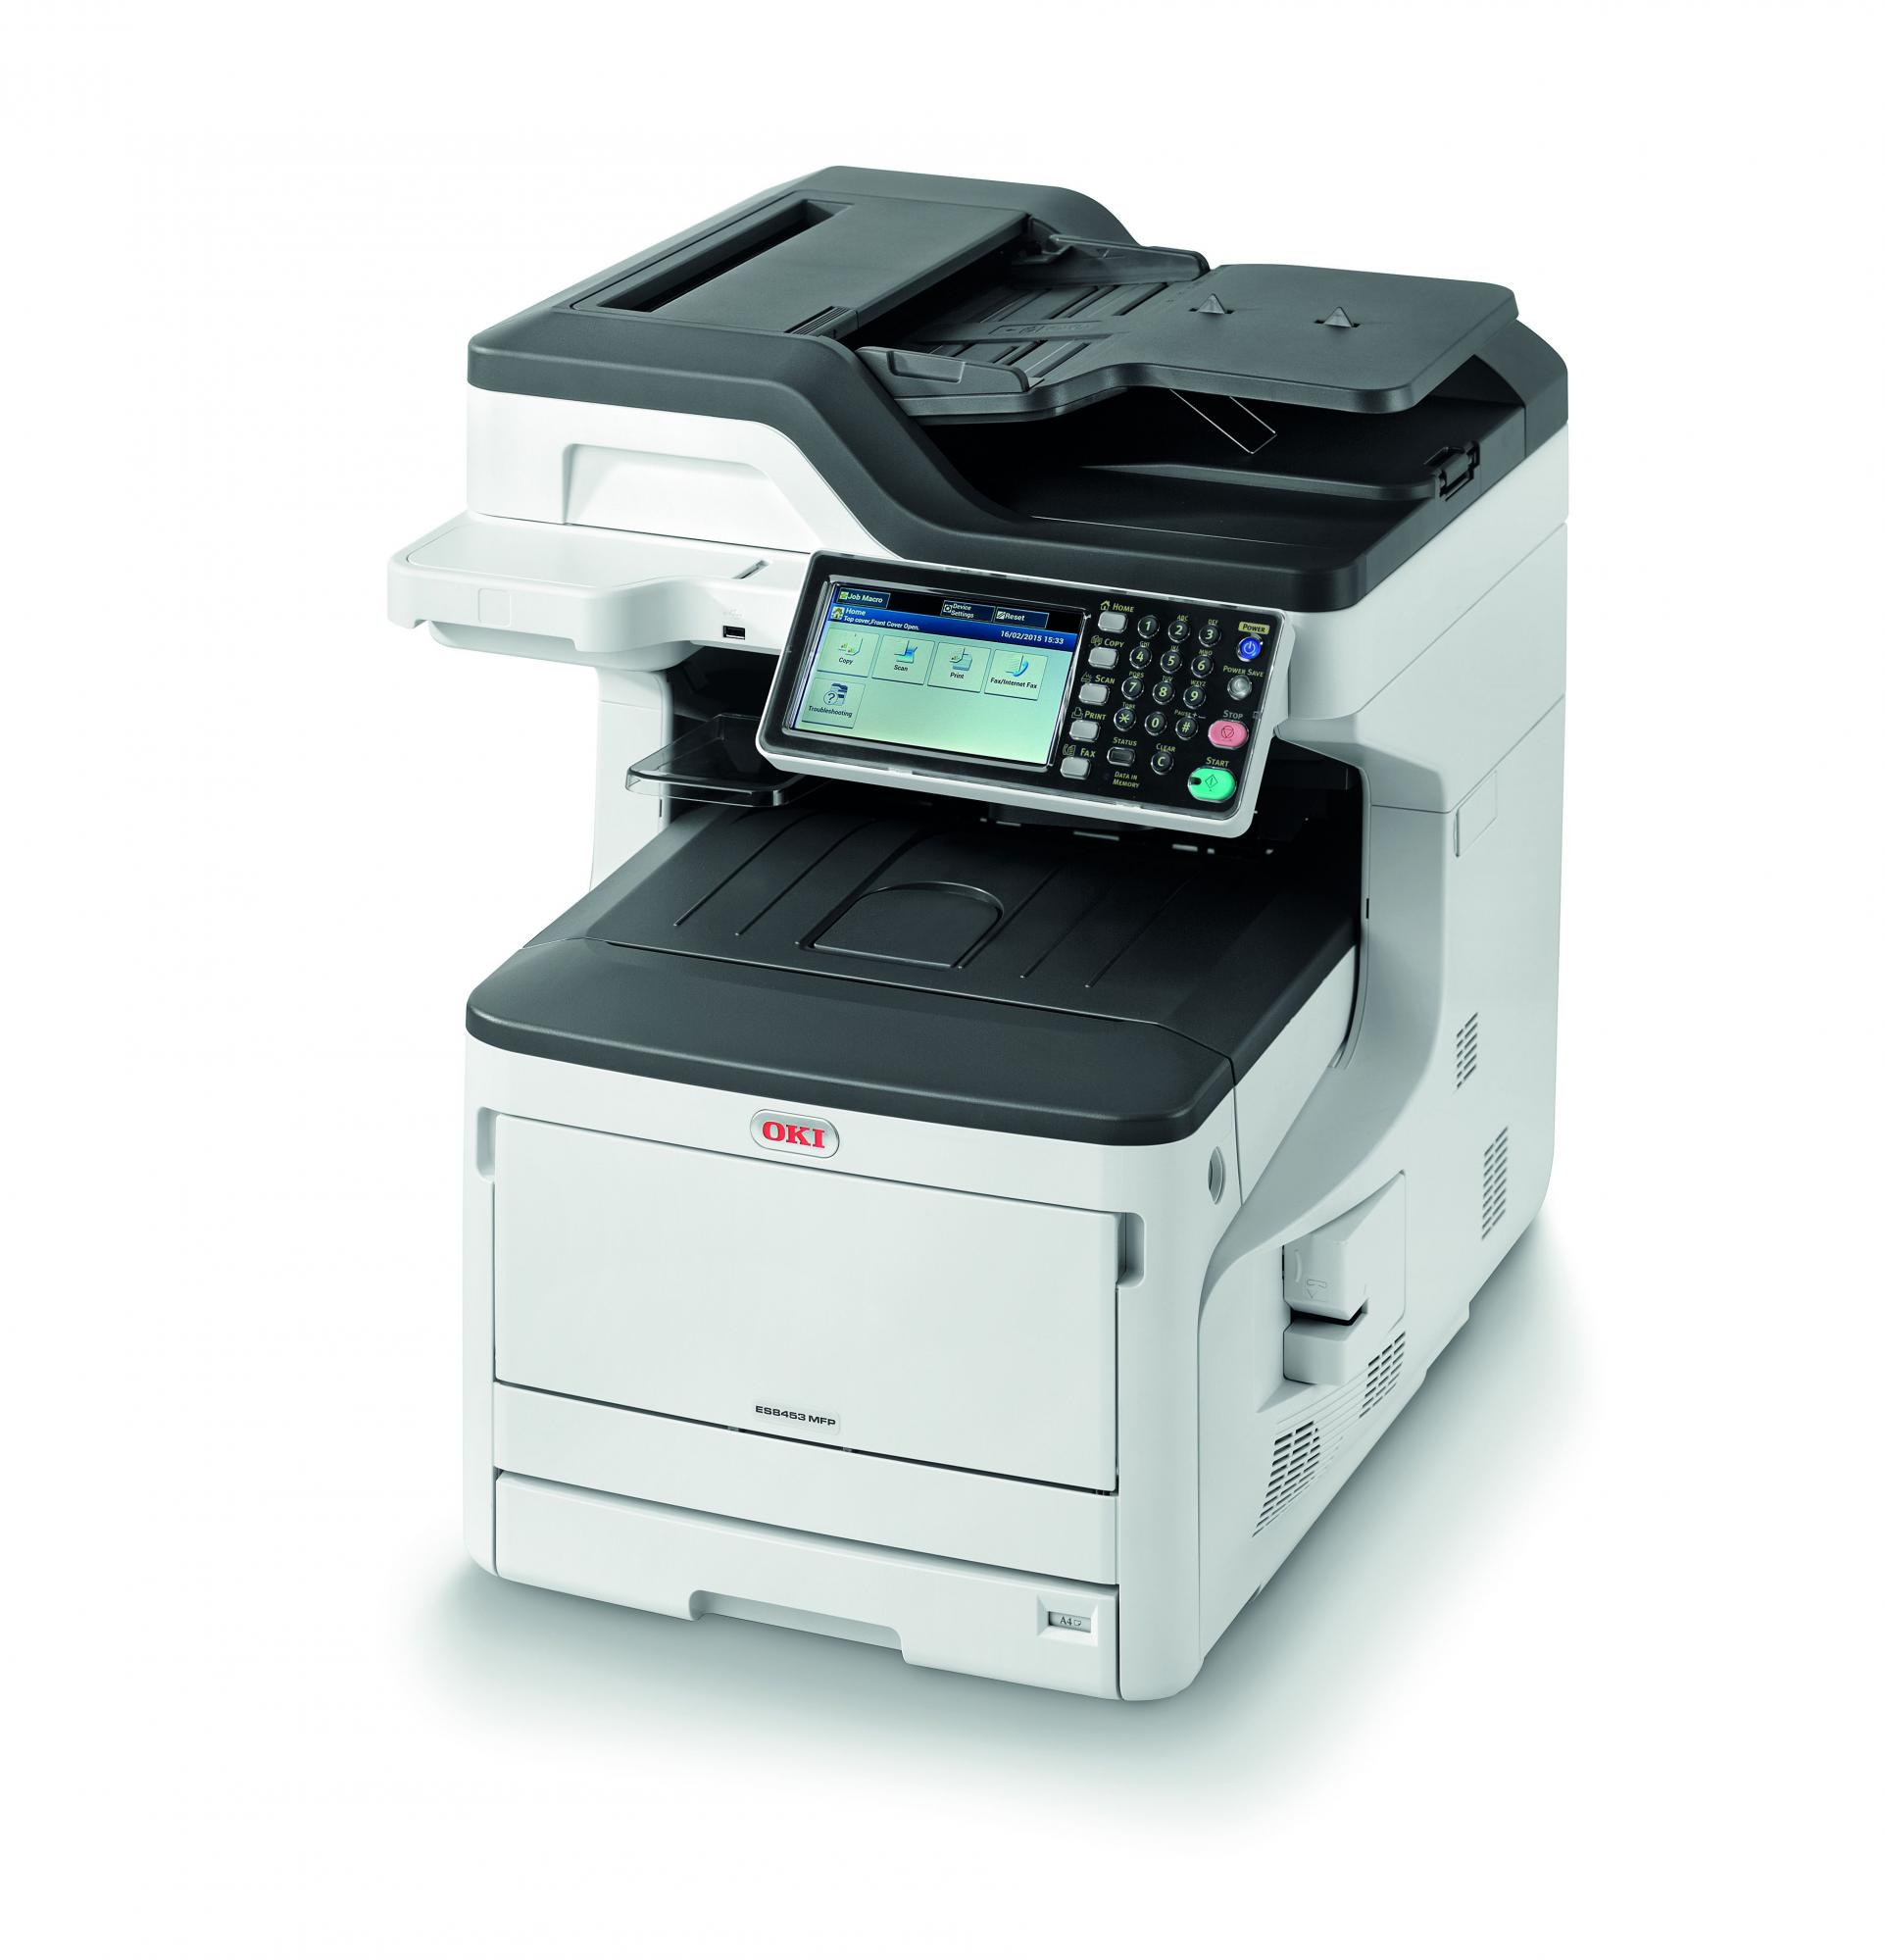 OKI ES8453dn MFP The versatile smart MFP, simple to use and seamlessly integrated into document workflow